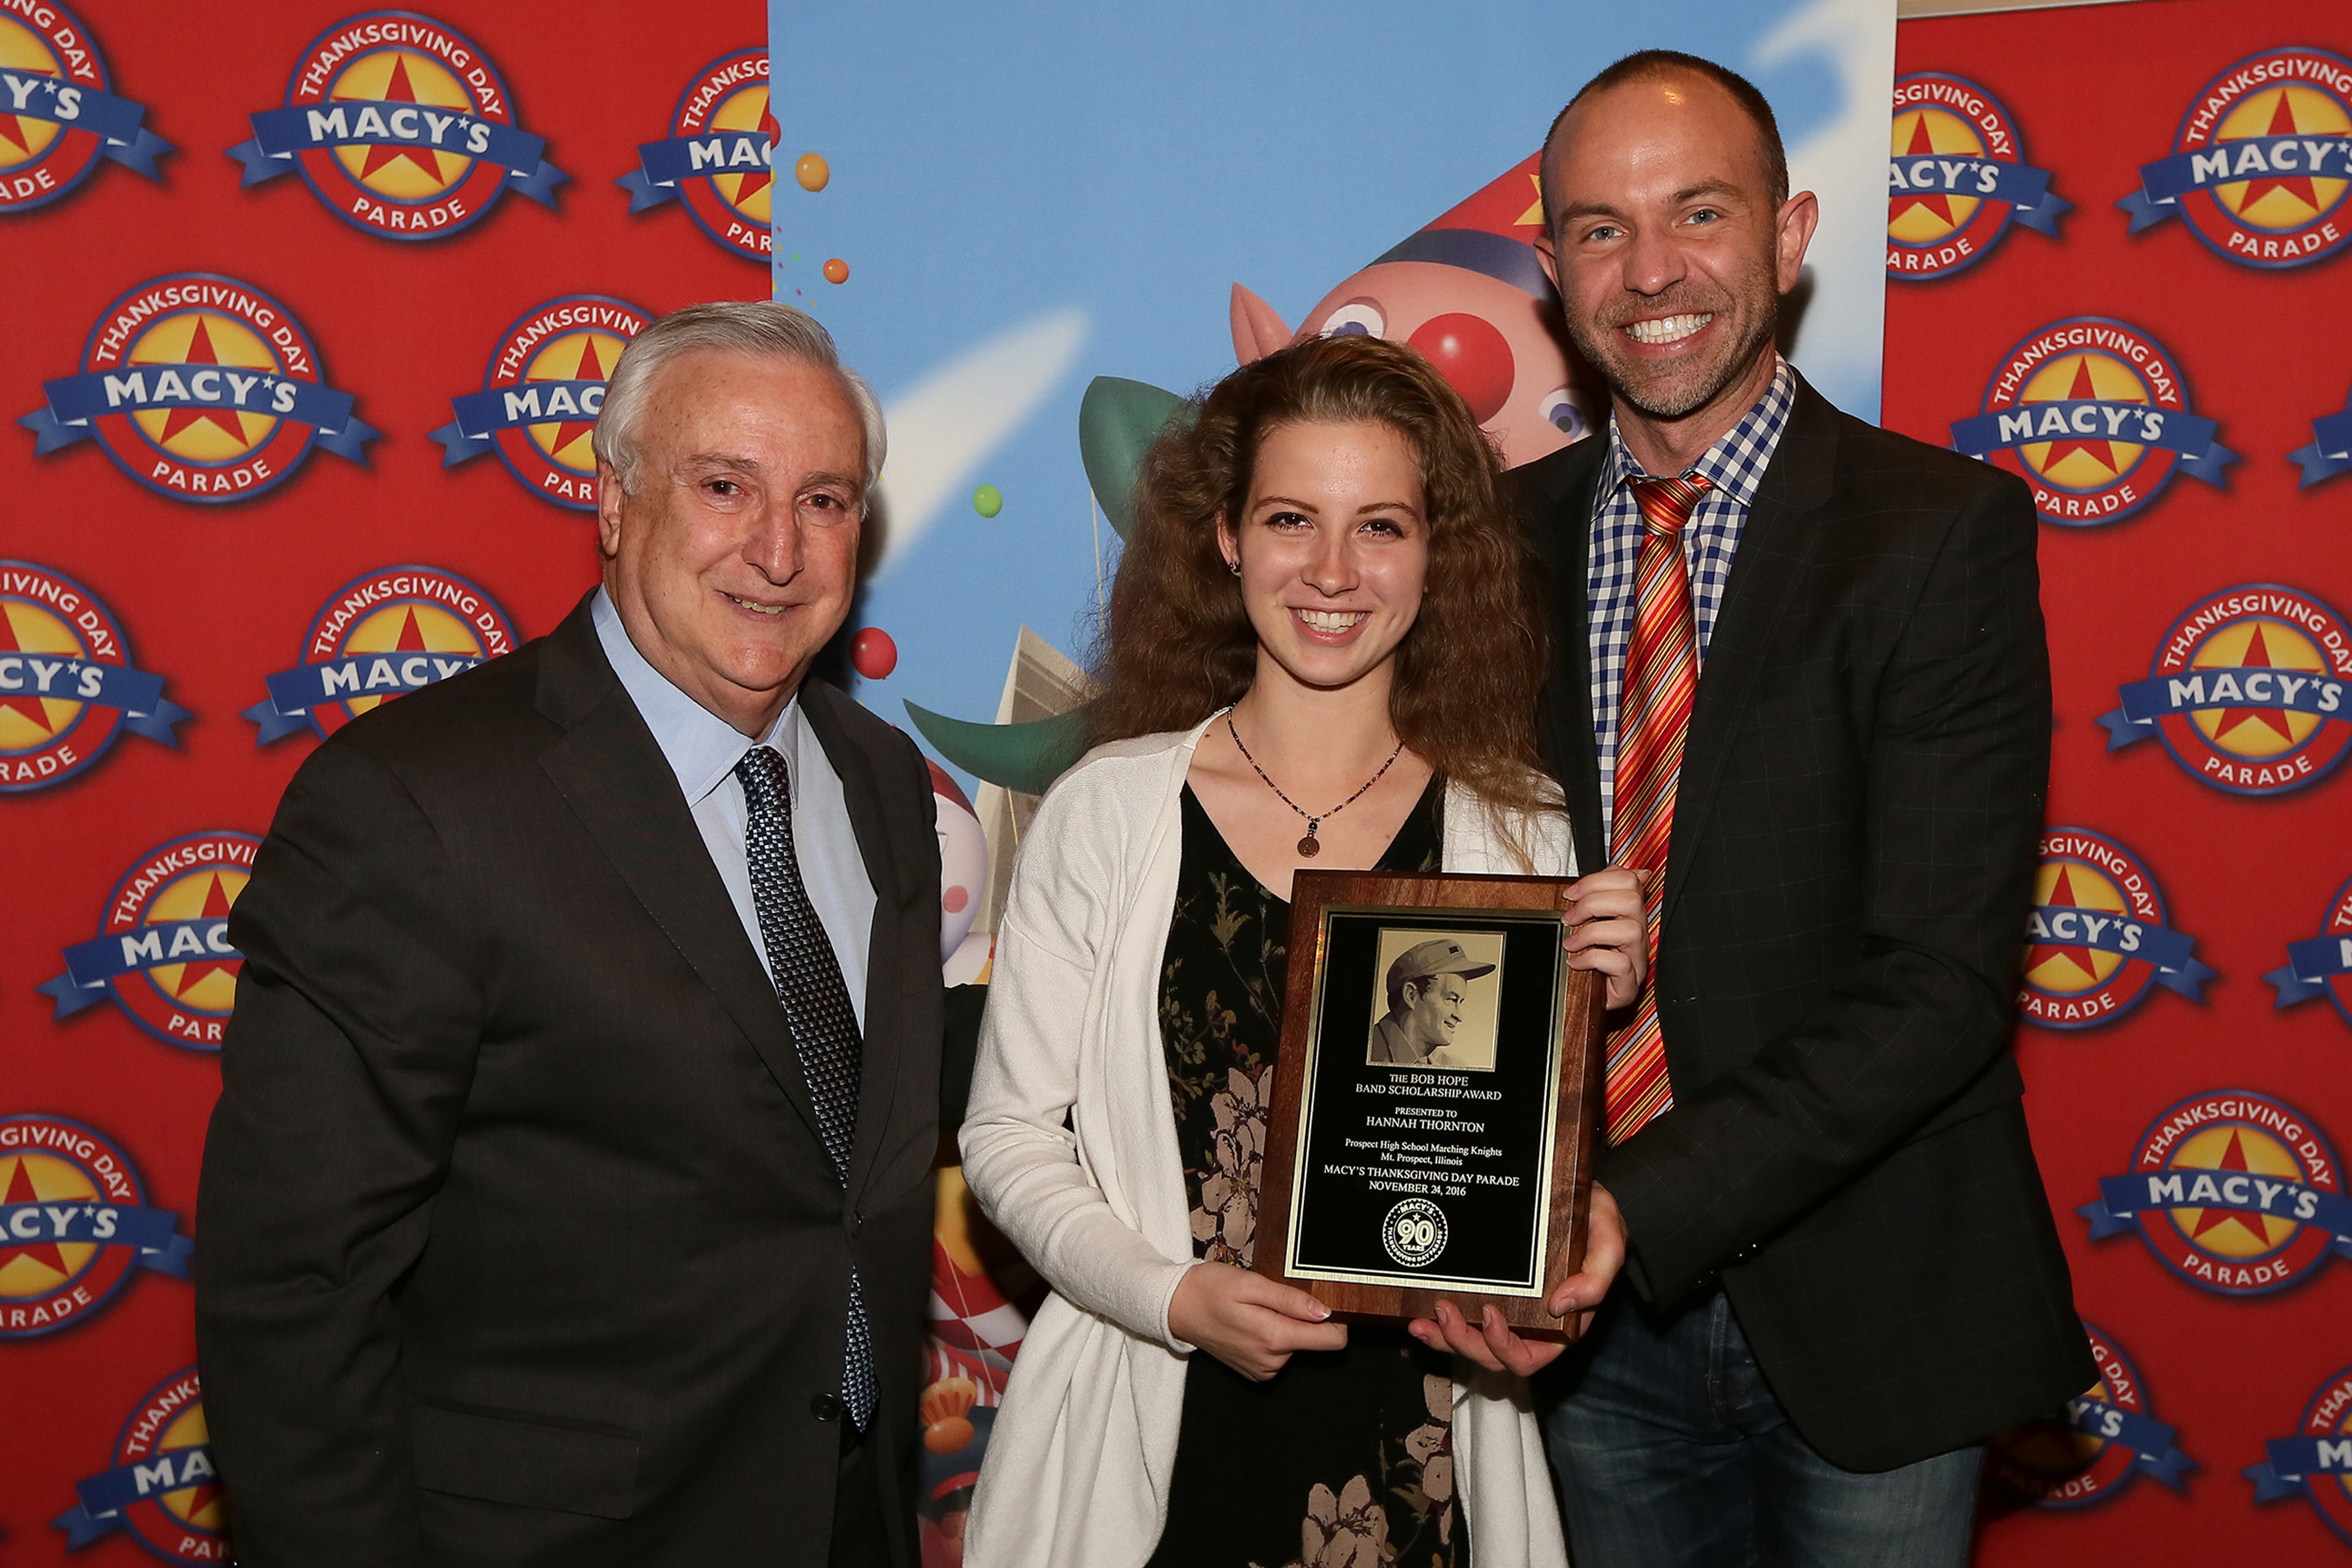 bob hope band scholarship awarded to prospect high school ing tony montalto exec director bob dolores hope foundation hannah thornton wesley whatley creative director macy s parade